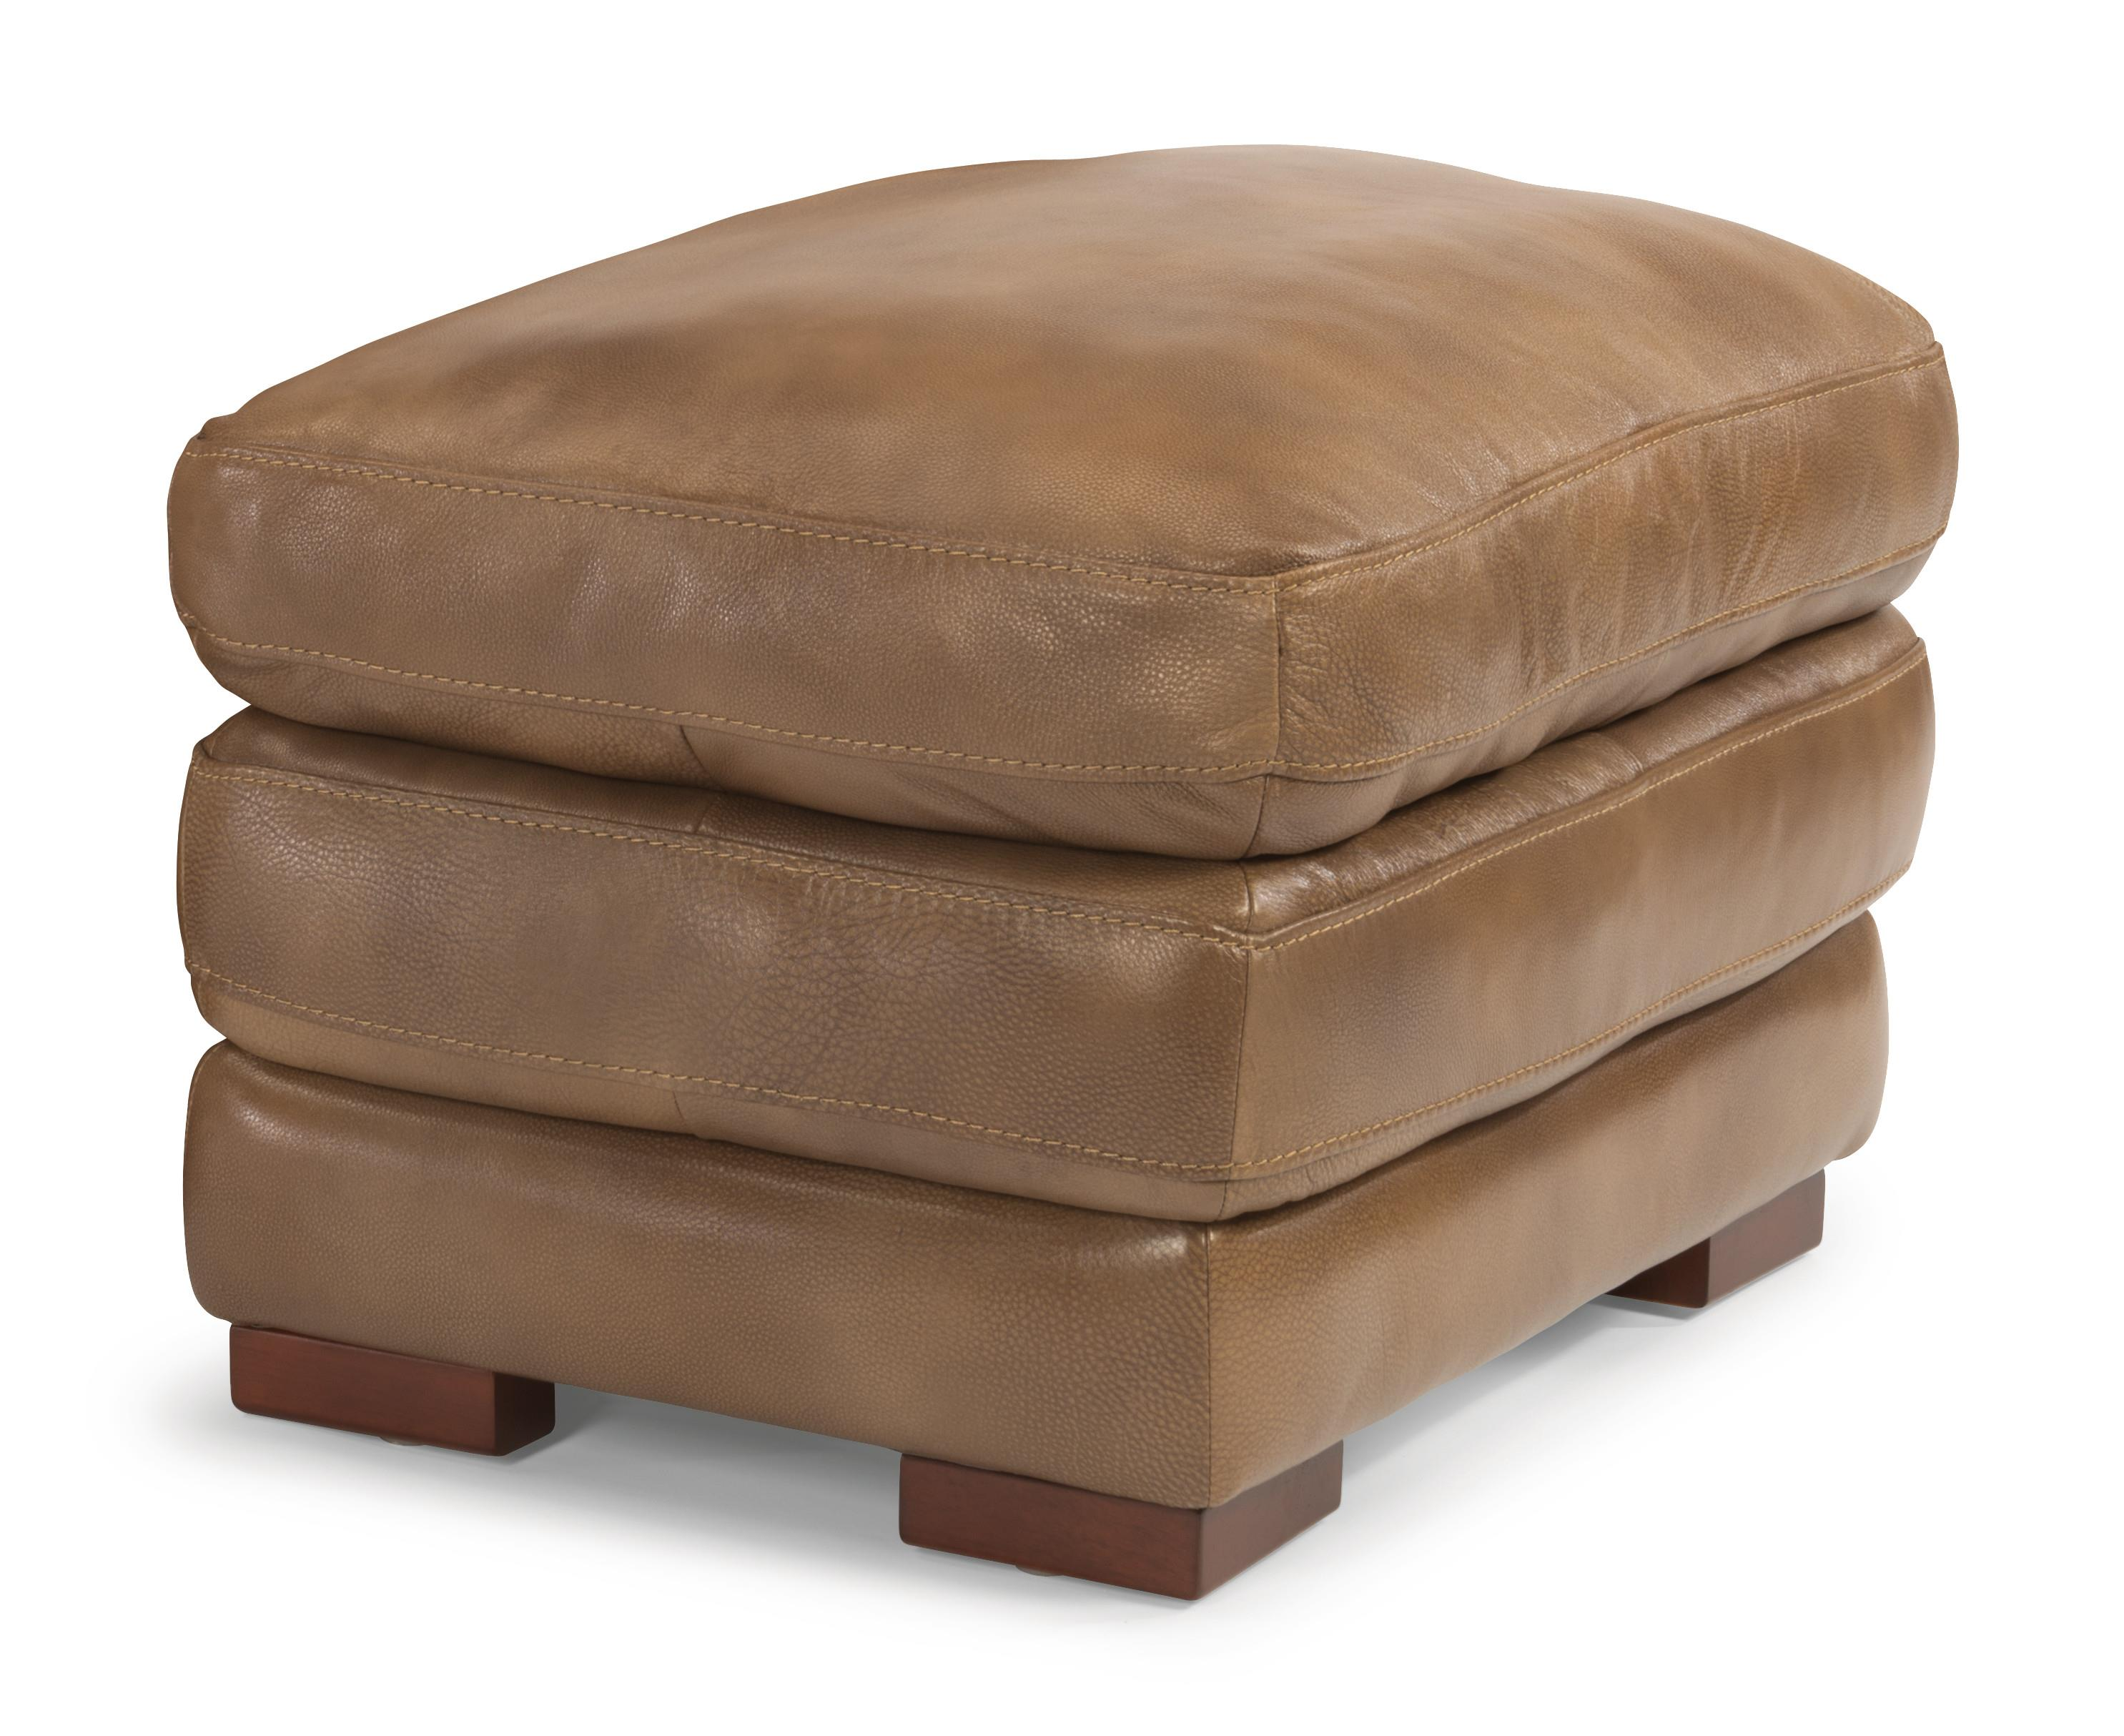 Flexsteel Latitudes - Dylan Leather Ottoman - Item Number: 1127-08-908-06